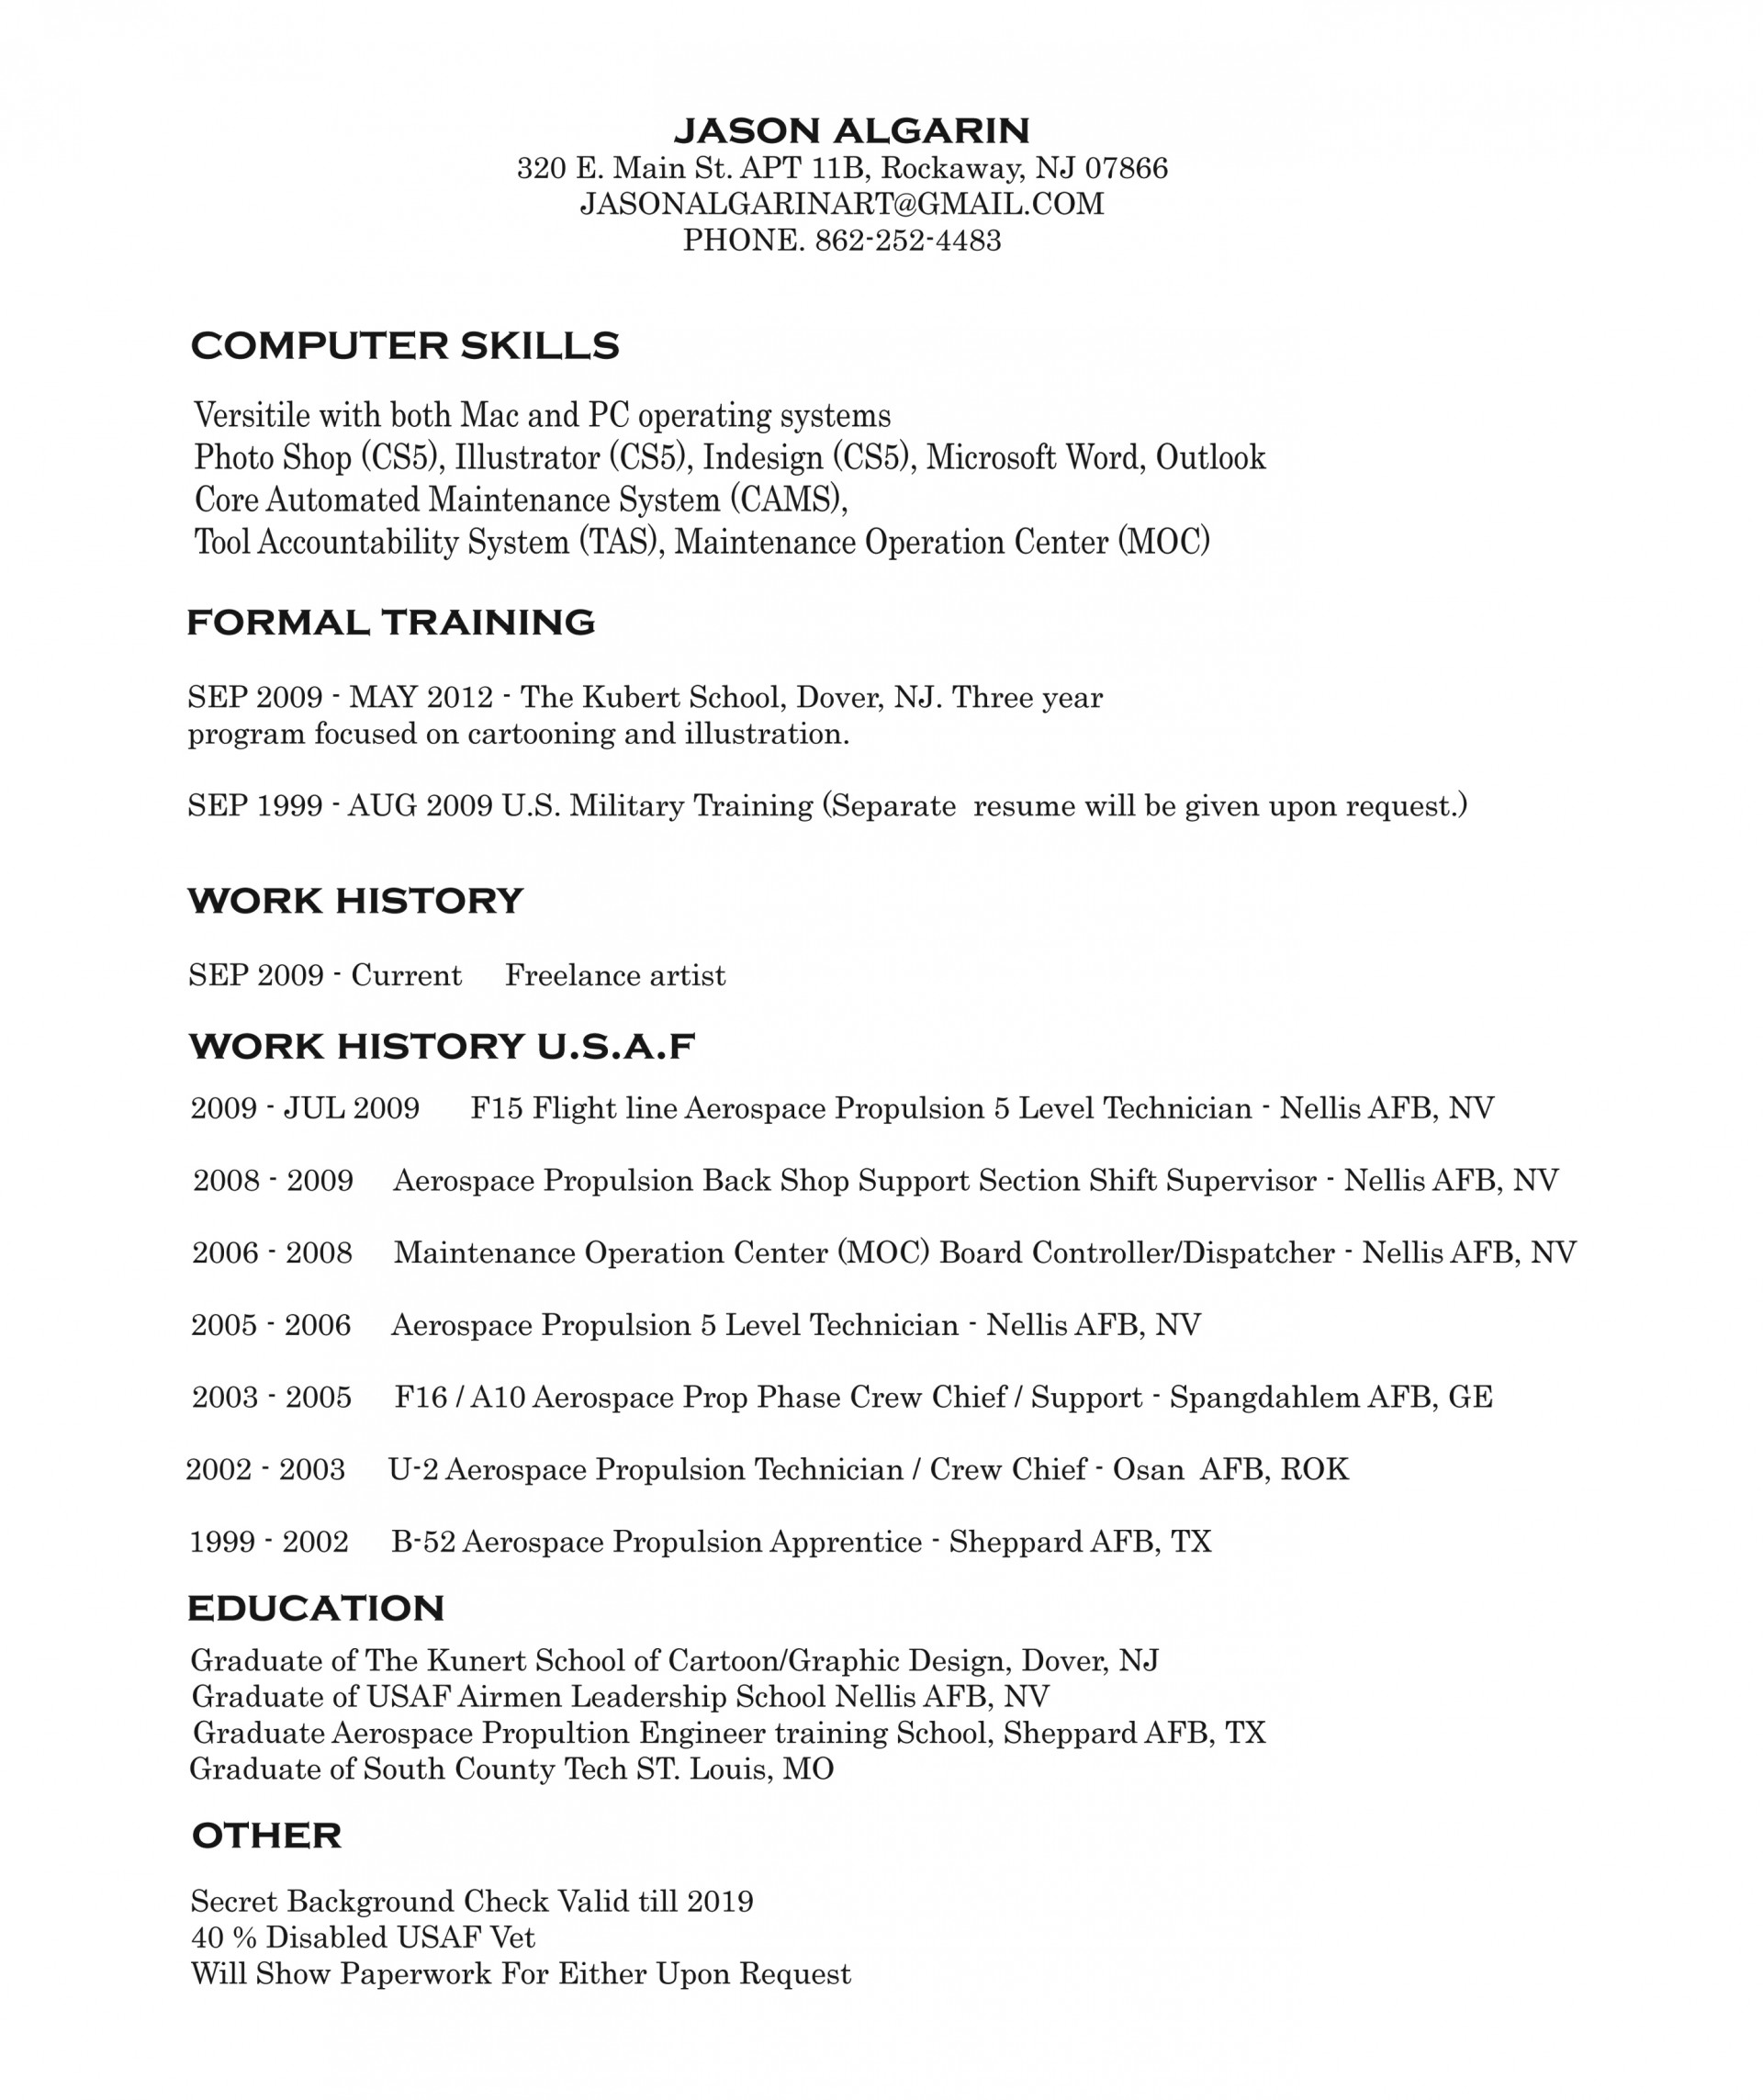 015 Art Resume Essays Formidable Essay Examples Conclusion School A2 1920